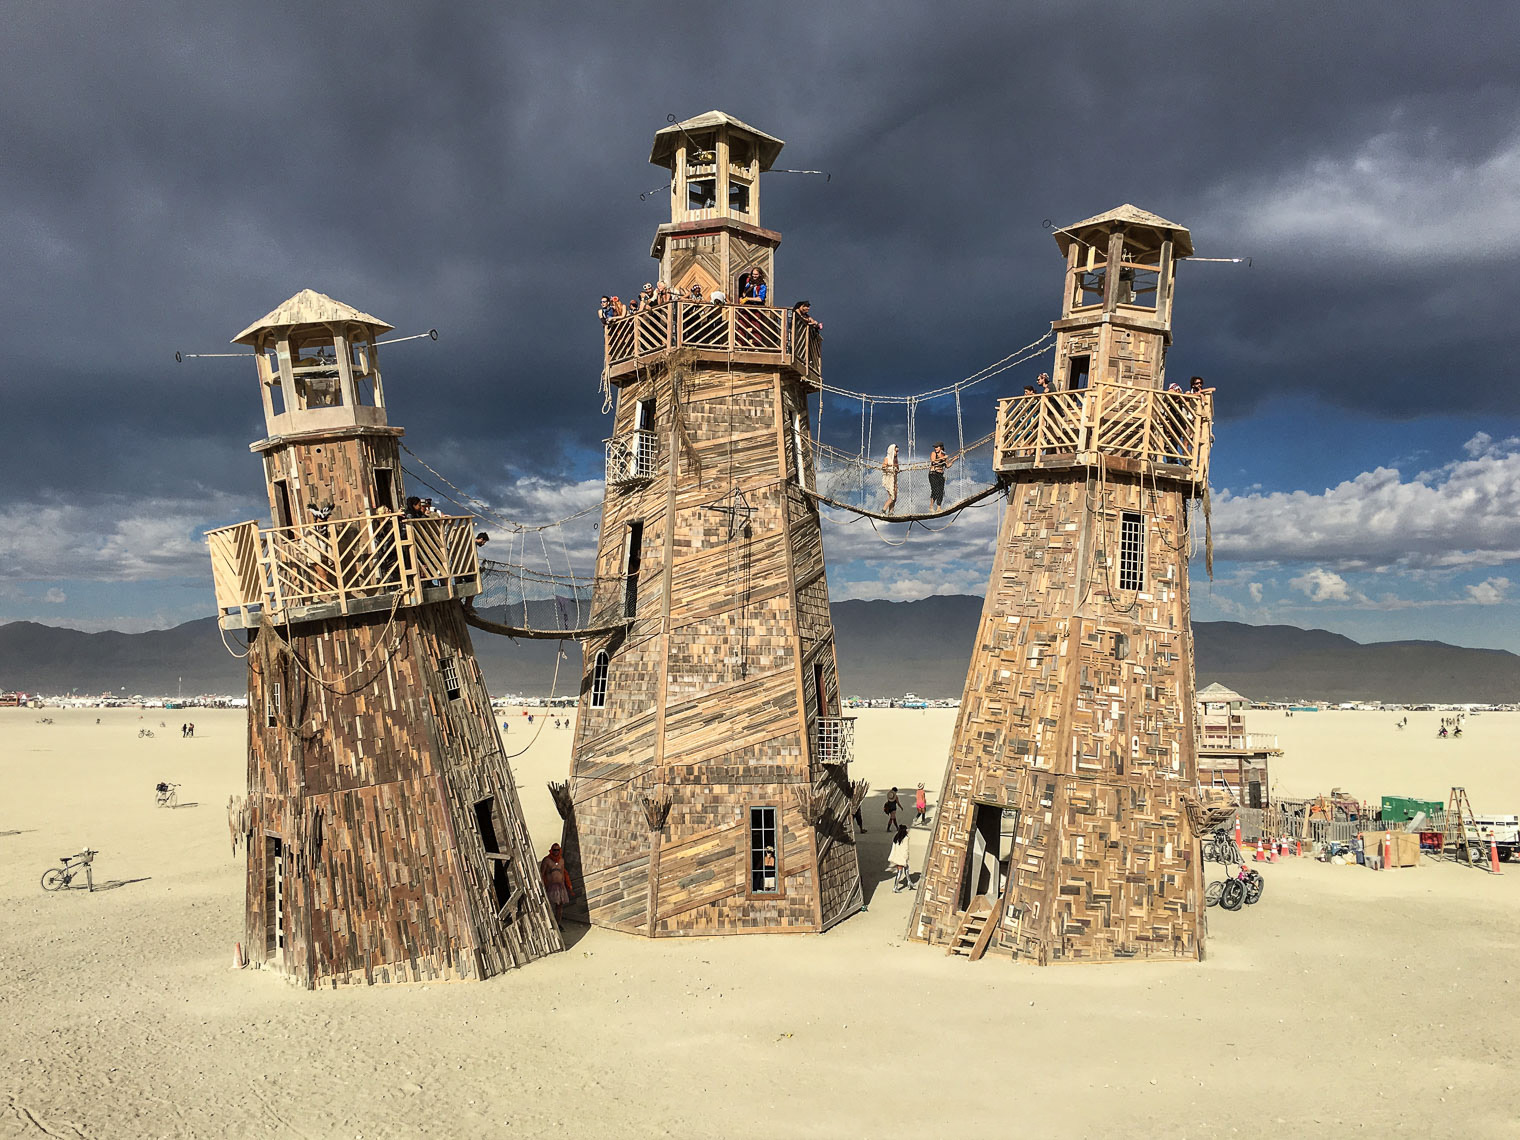 The Black Rock Desert Lighthouse Service